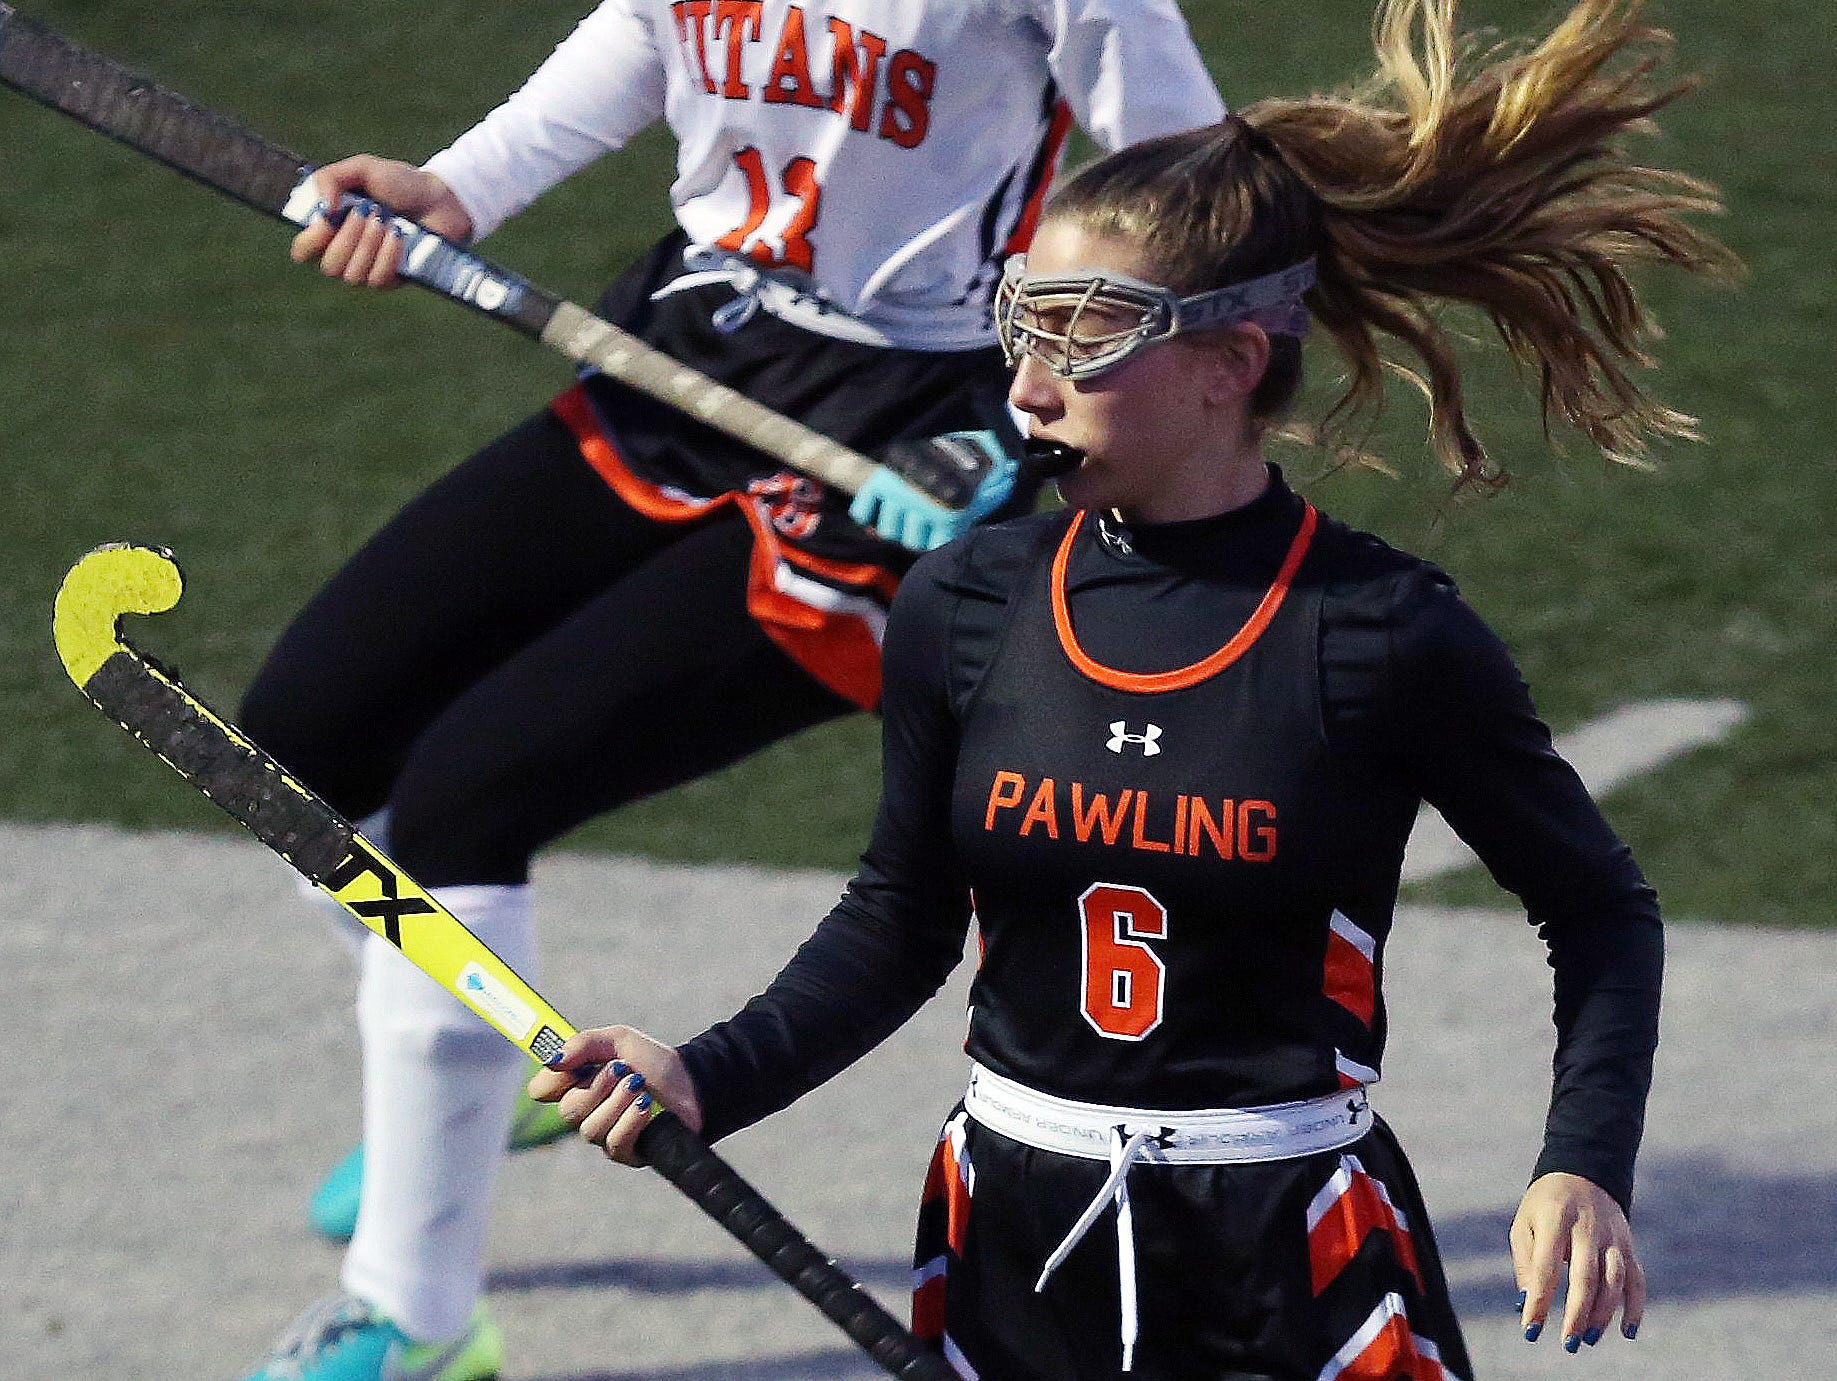 Pawling defeated Taconic Hills 1-0 in the Class C field hockey regional semifinal at Dietz Stadium in Kingston Oct. 30, 2018.